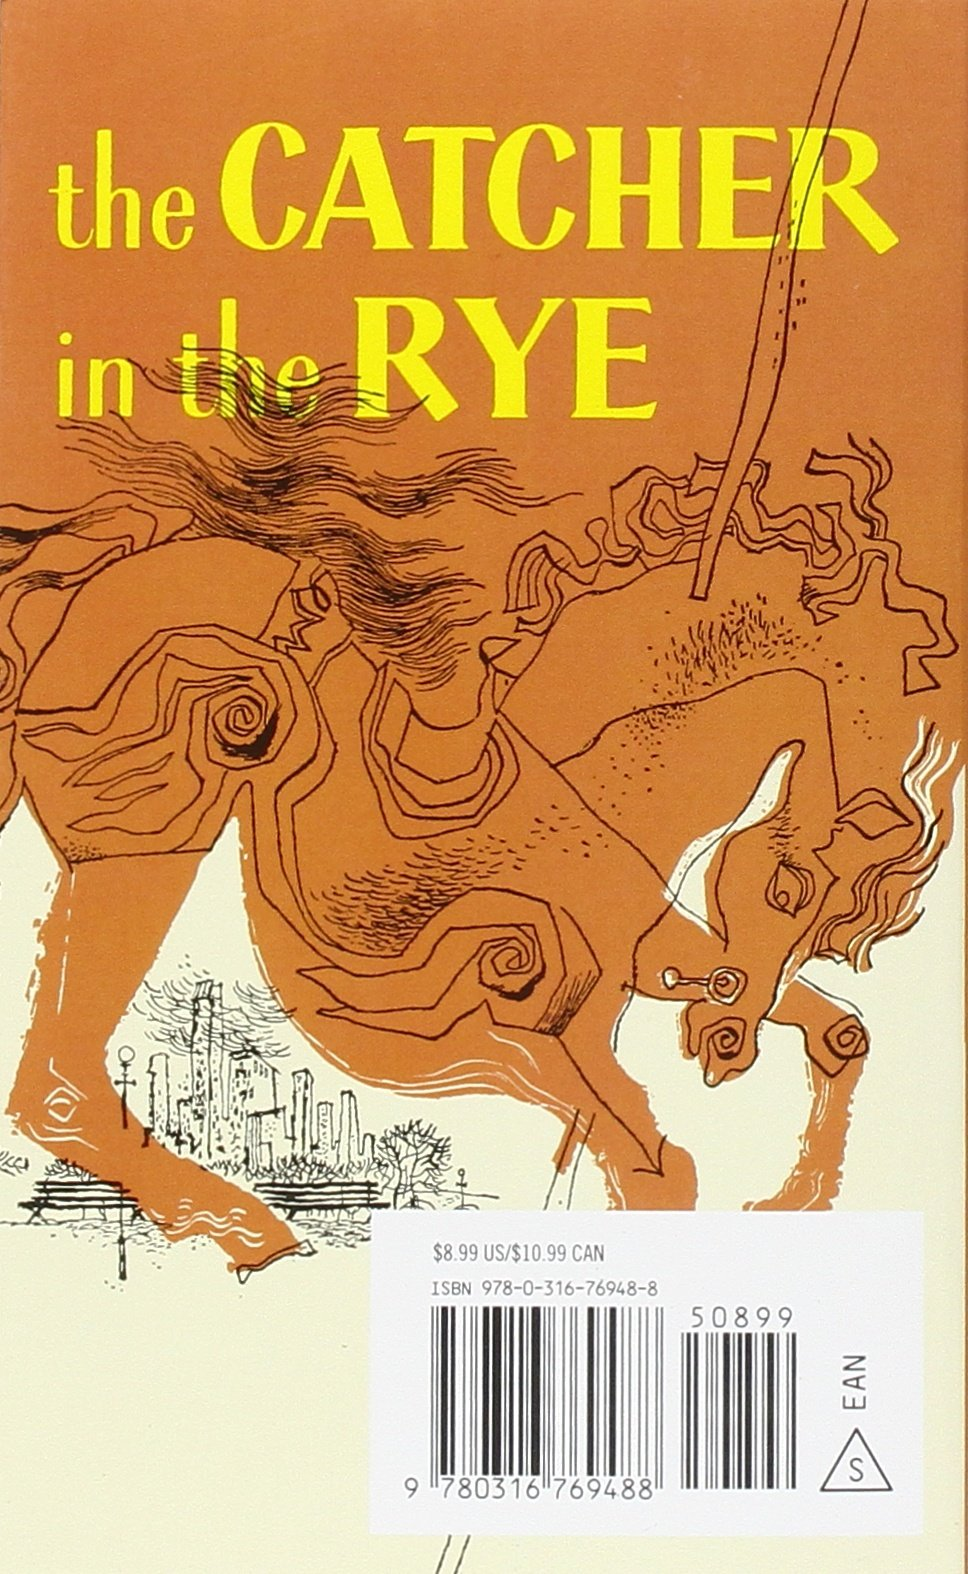 Views On America Essay Catcher In The Rye Conclusion Writing Essays From Start To Finish Buy The  Catcher In The Cultural Difference Essay also The Red Convertible Essay Catcher In The Rye Conclusion Catcher In The Rye Conclusion Writing  Essays About The Great Gatsby